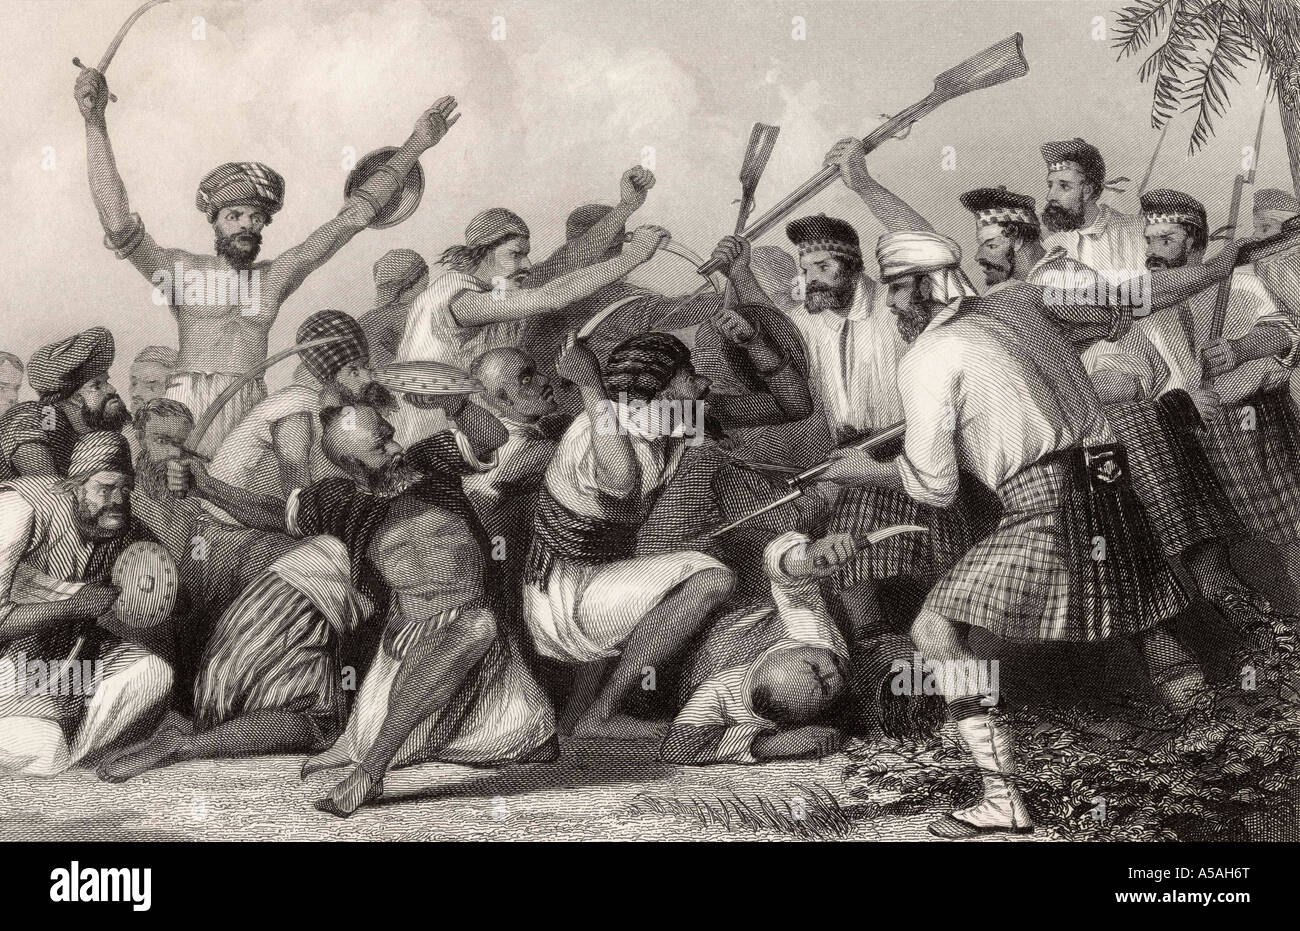 Conflict with the Ghazees before Bareilly May 6th 1858 From The History of the Indian Mutiny published 1858 - Stock Image